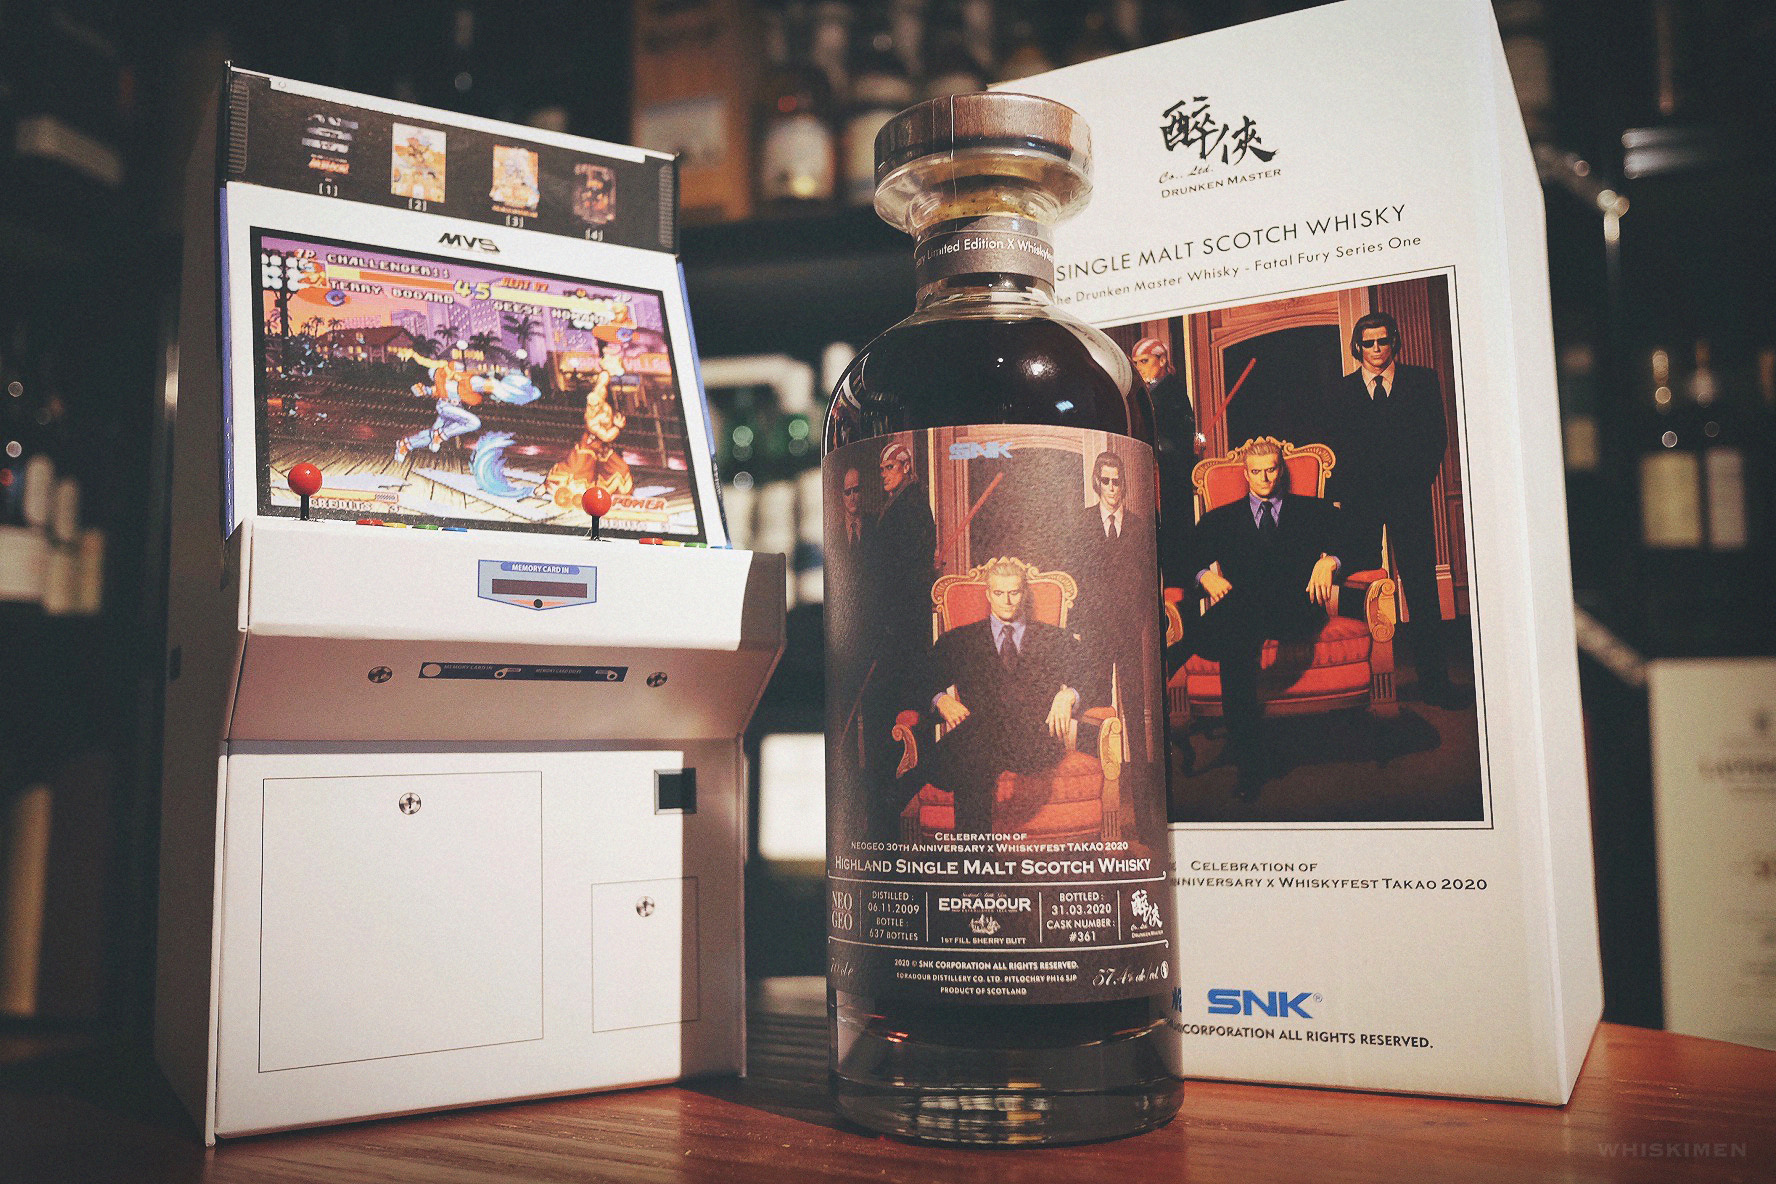 The Drunken Master x NeoGeo Edradour 2009 10 Year Old Single Malt Whisky (SNK 餓狼傳說 Fatal Fury Series One – Geese Howard)